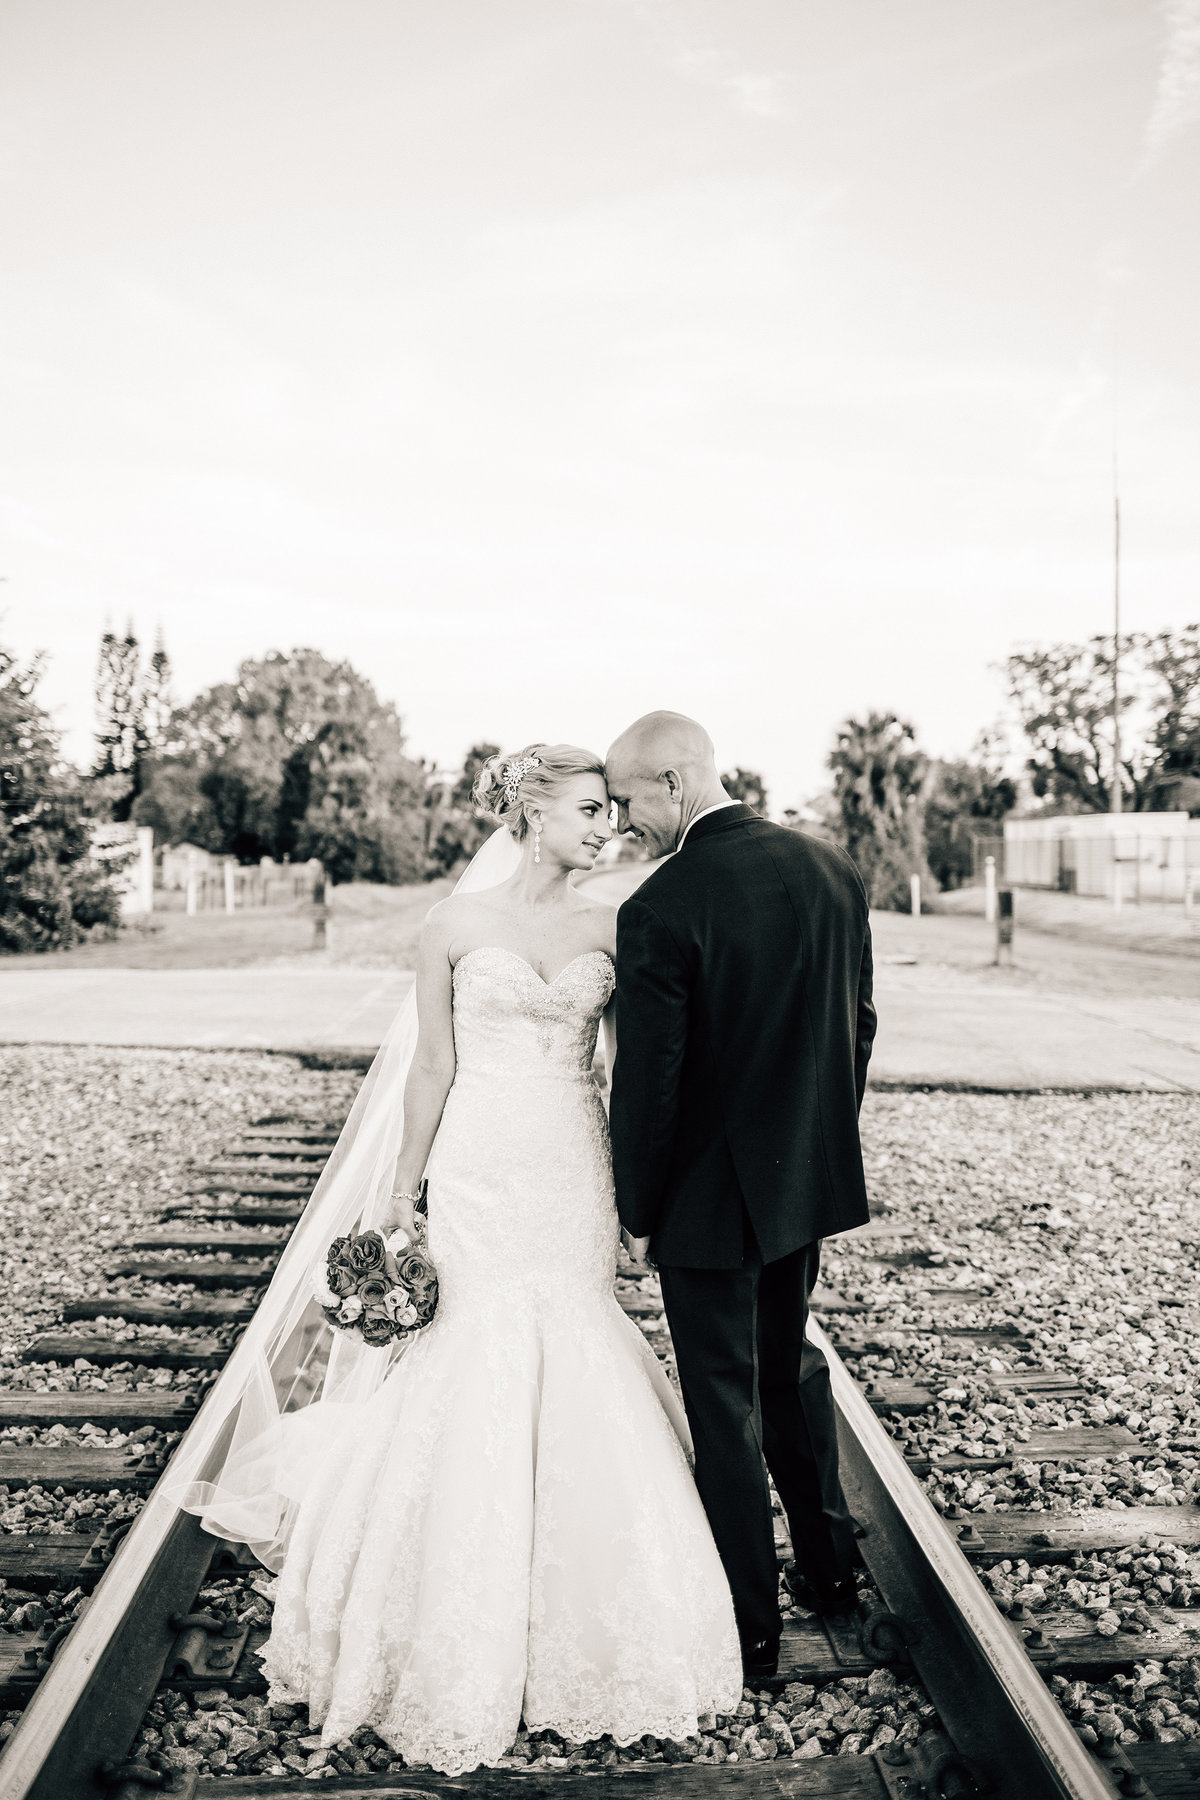 Kimberly_Hoyle_Photography_Milam_The_Back_Center_Melbourne_Wedding-61